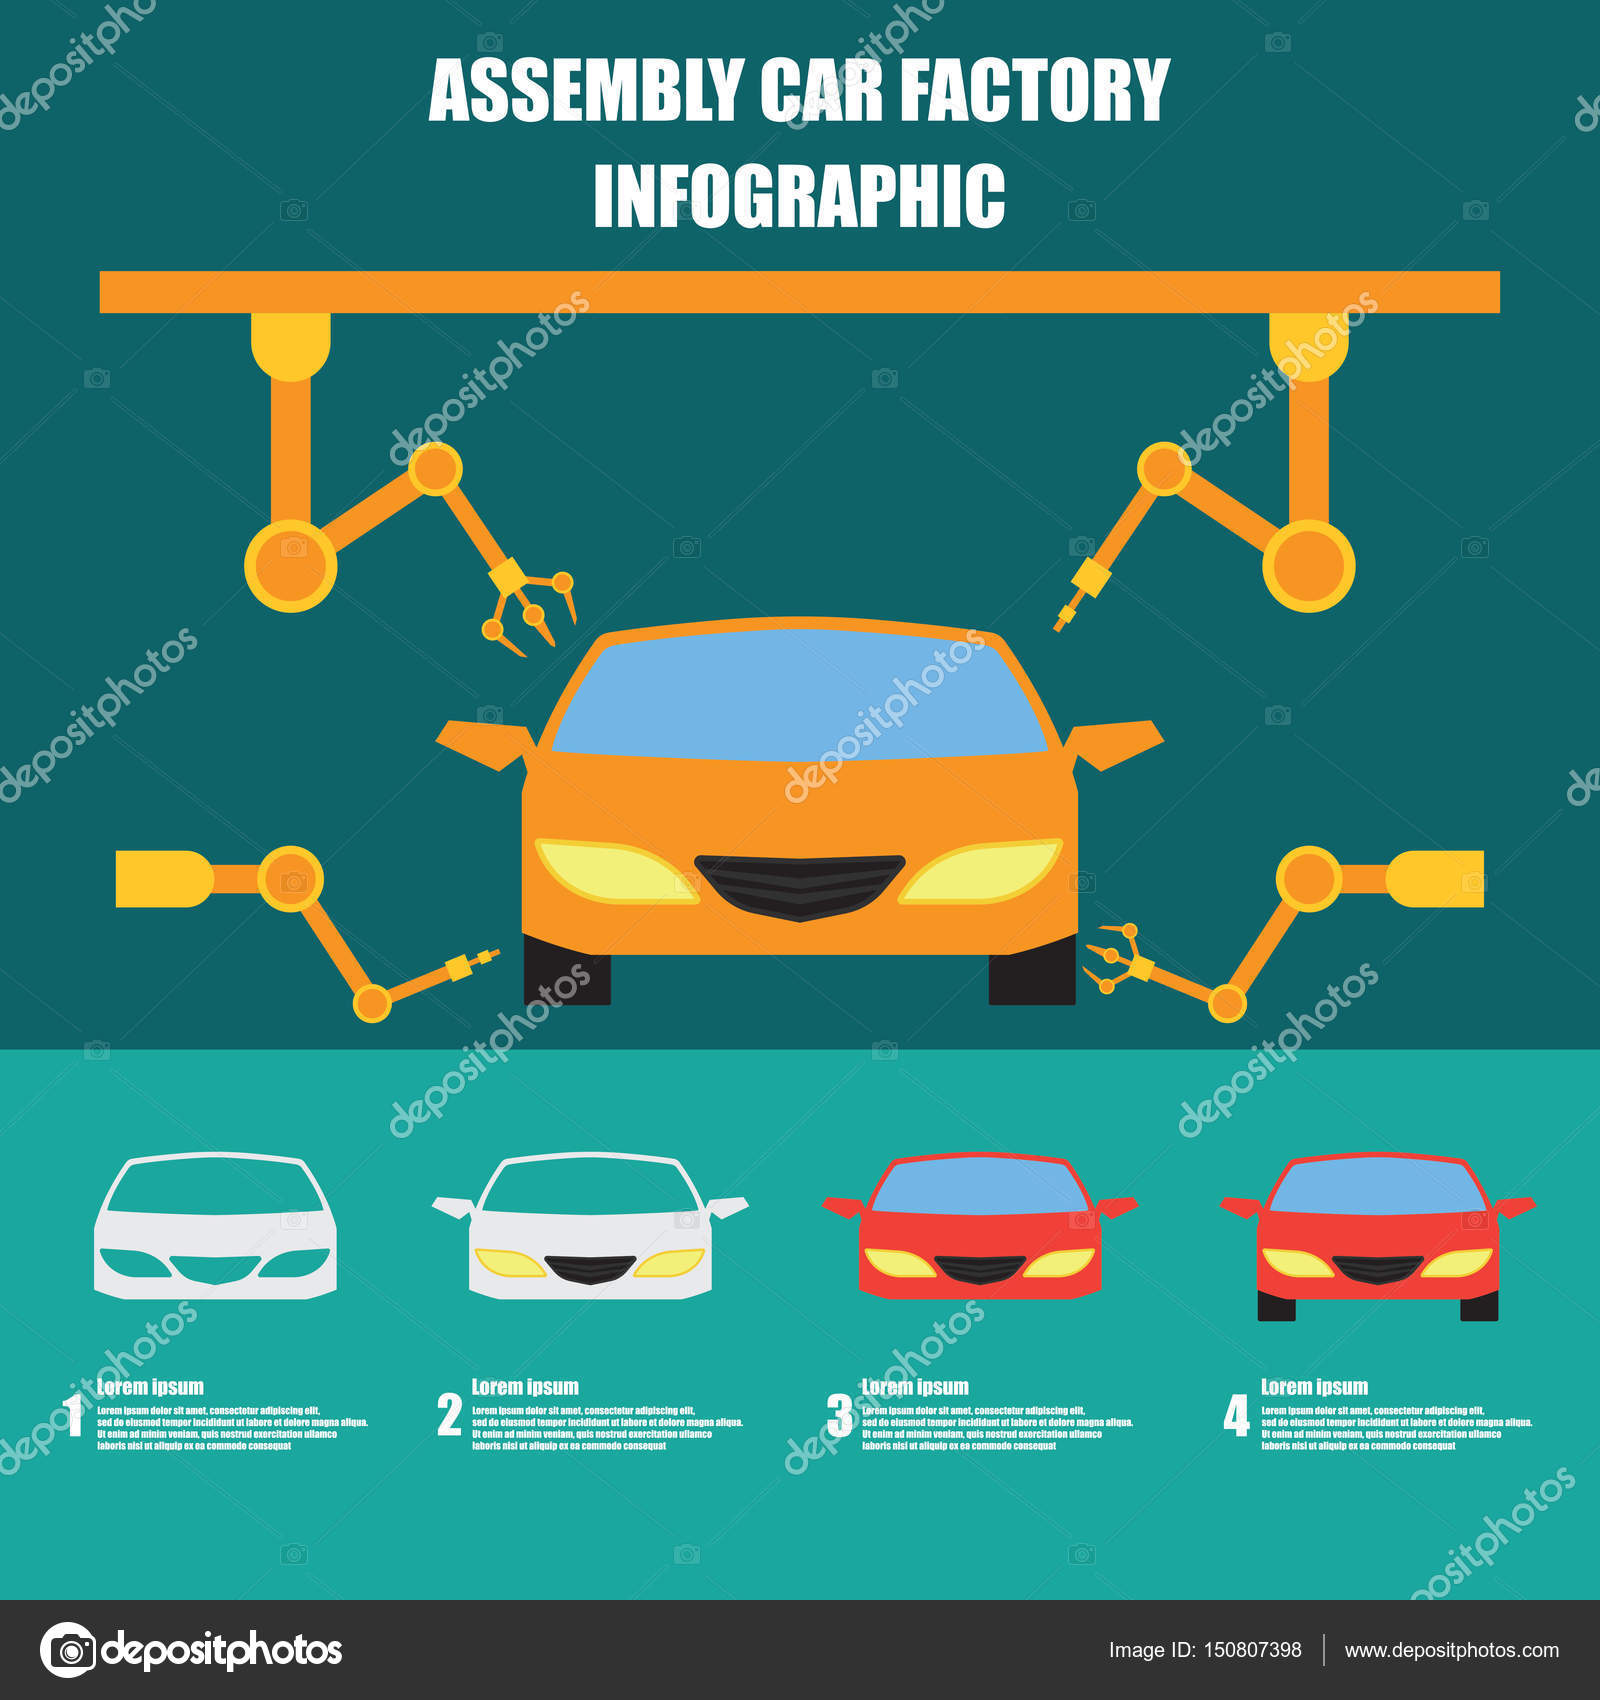 hight resolution of assembly car infographic assembly line and car production plant process flat vector illustration stock illustration